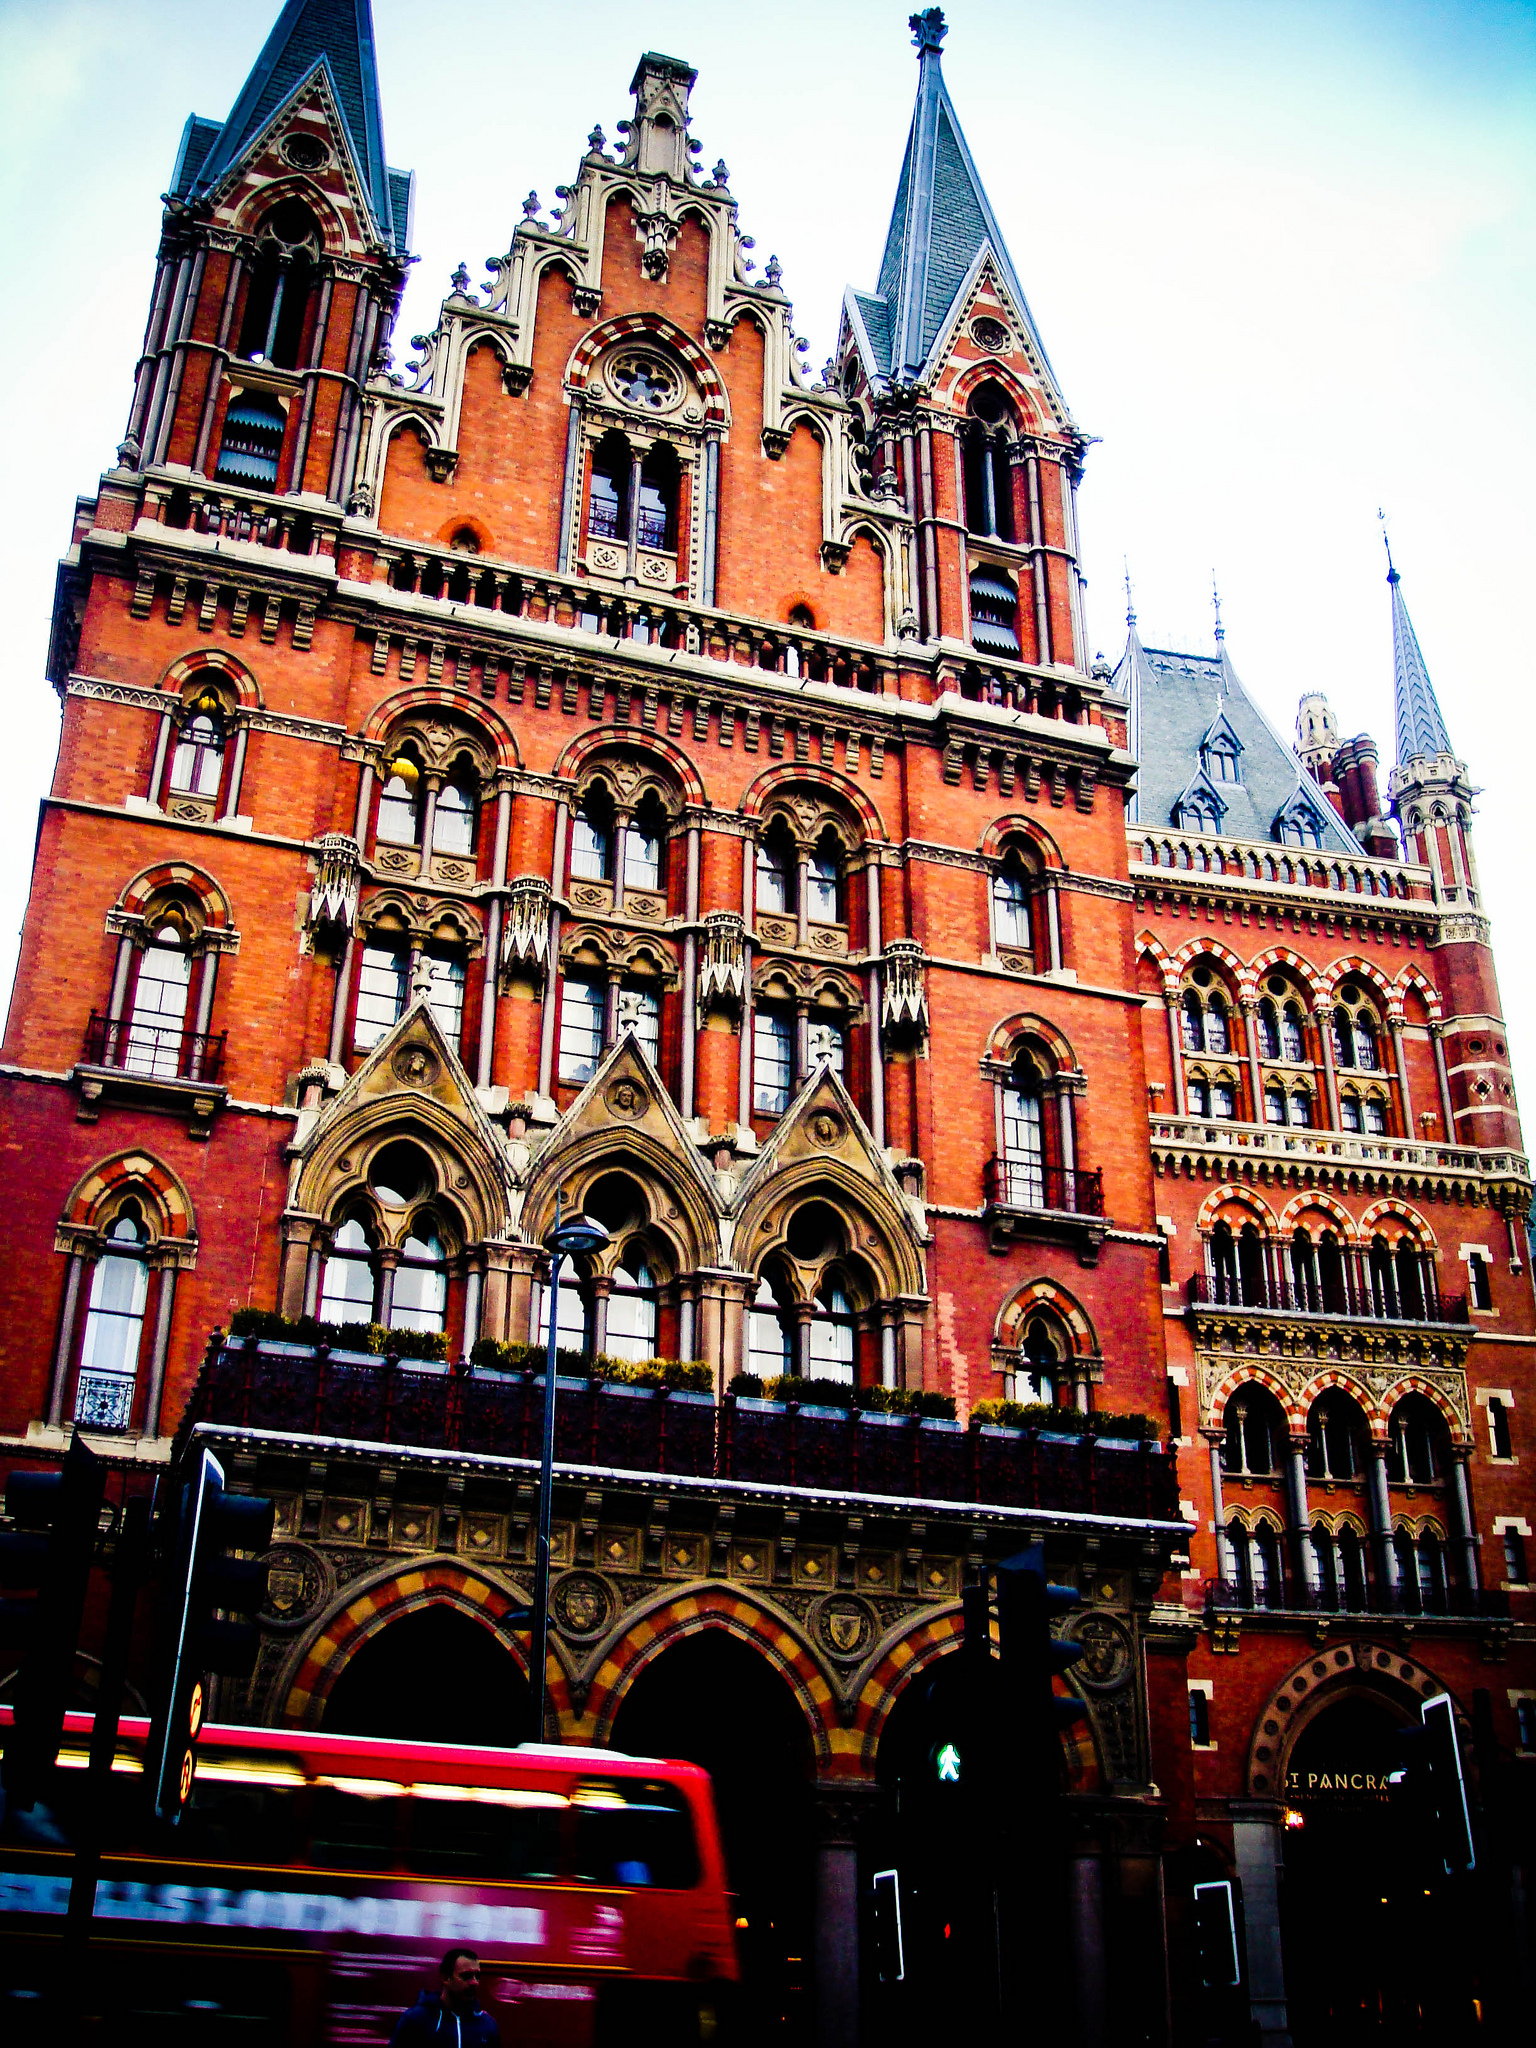 St pancras renaissance london hotel hotel in london for London hotels